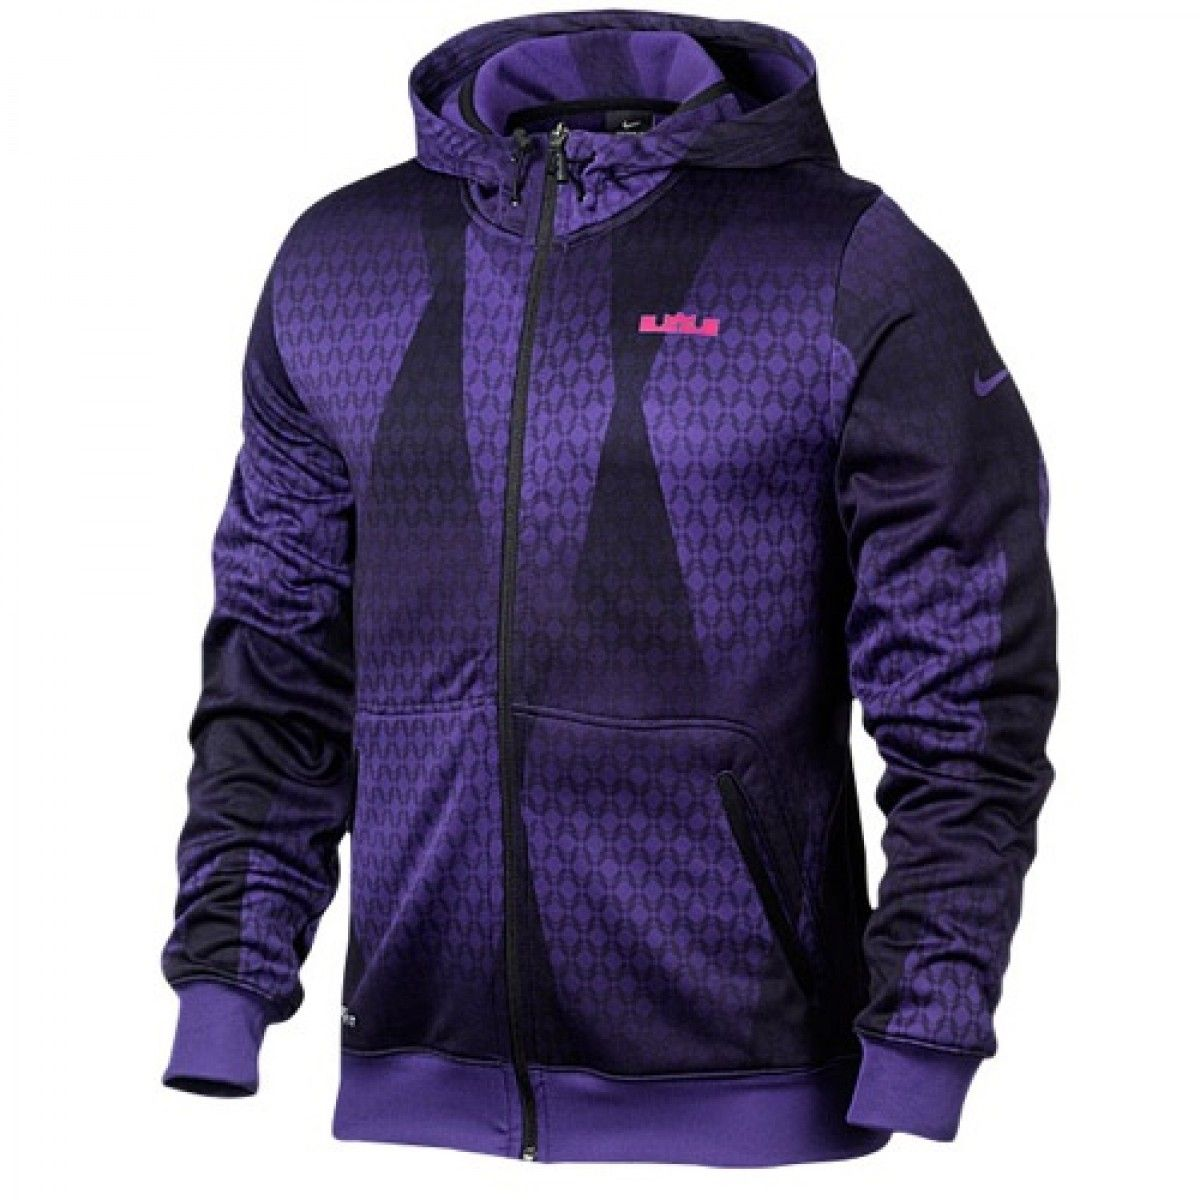 Find purple hoodies for men at ShopStyle. Shop the latest collection of purple hoodies for men from the most popular stores - all in one place.